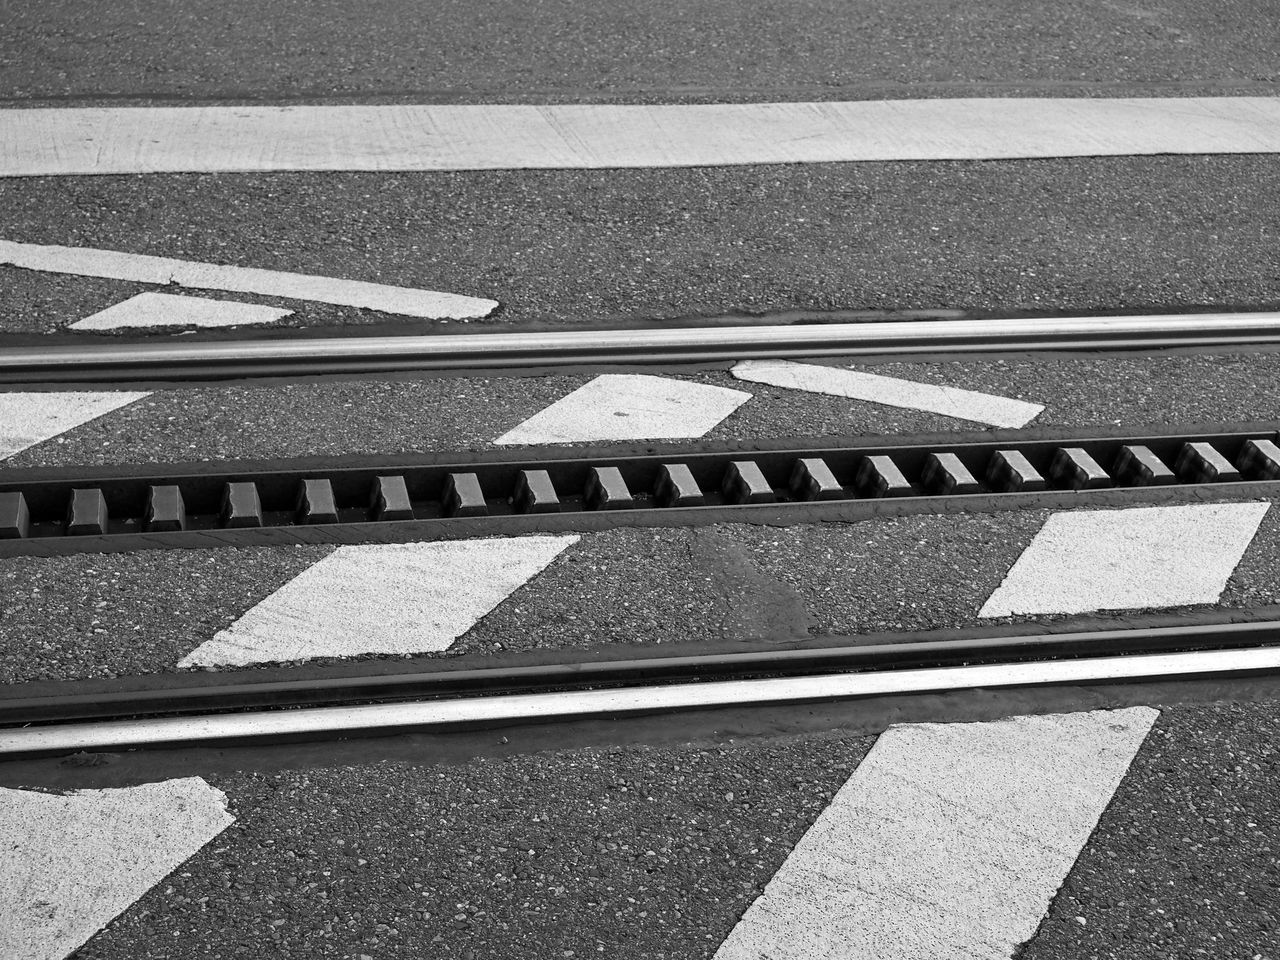 0711 Asphalt City Close-up Day Diminishing Perspective Empty Minimalism Mode Of Transport Monochrome My Point Of View No People Outdoors Pivotal Ideas Road Road Marking The Way Forward Transportation Vanishing Point Zacke Stuttgart Zahnradbahn